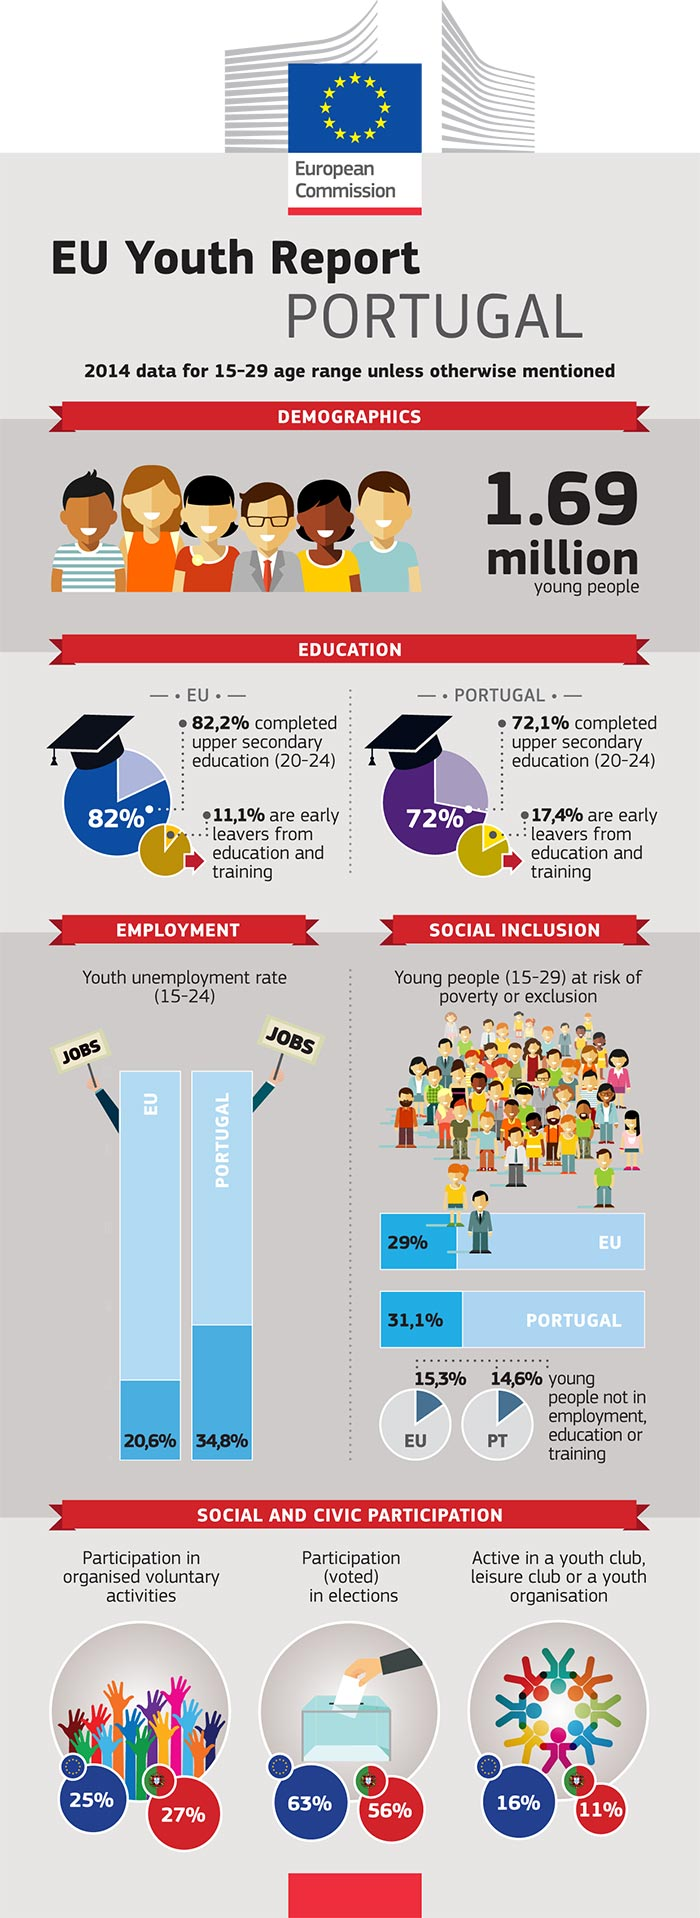 EU Youth Report infographic: Portugal